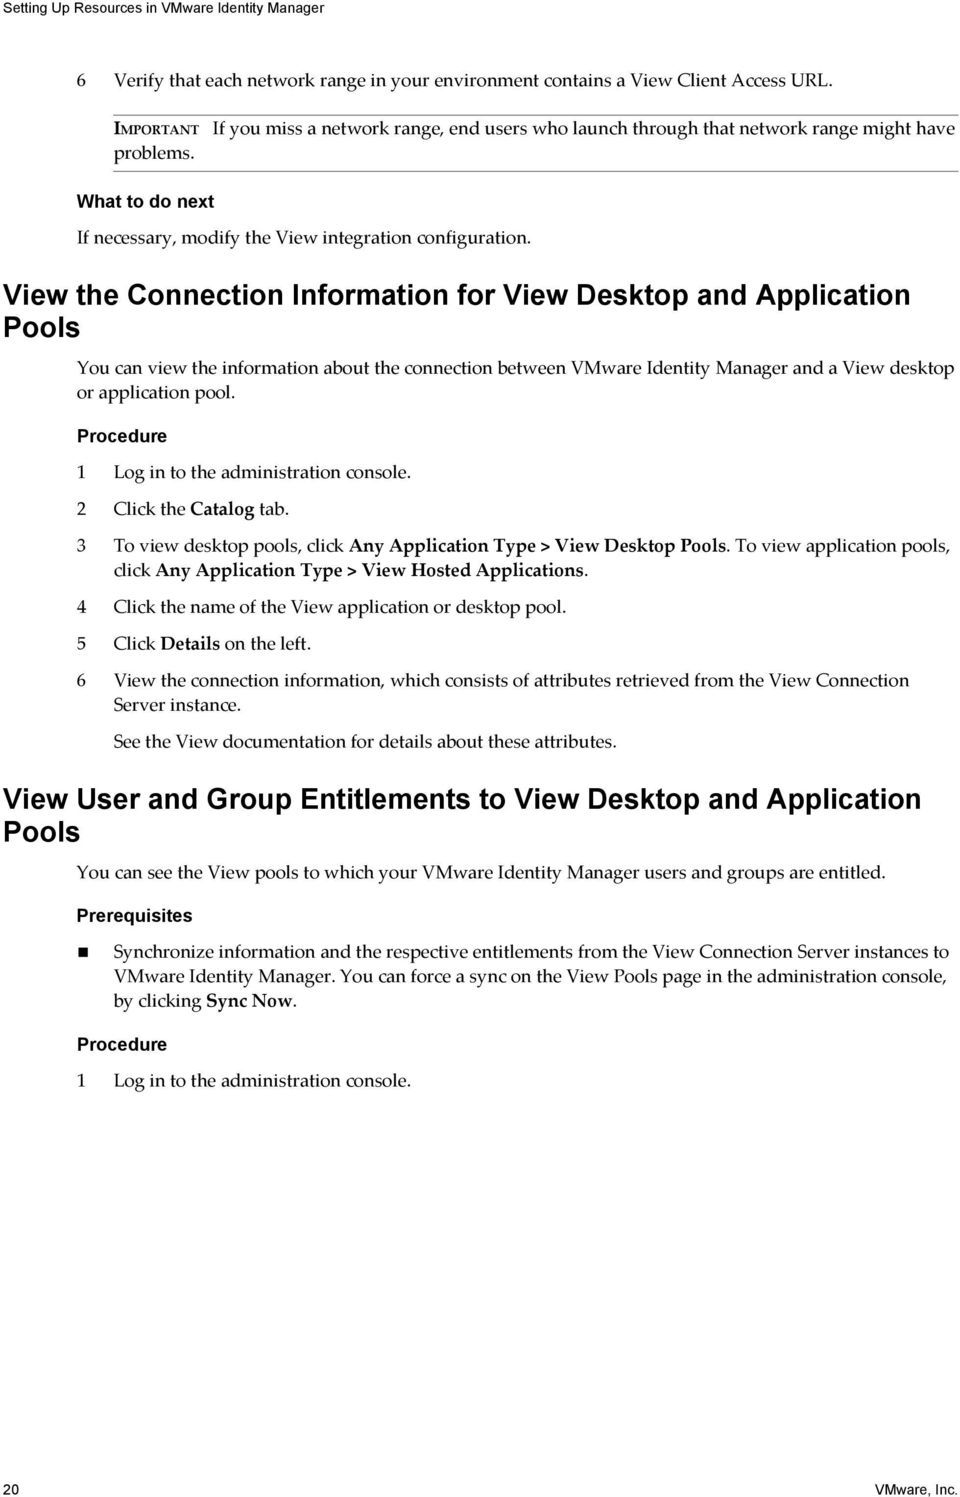 View the Connection Information for View Desktop and Application Pools You can view the information about the connection between VMware Identity Manager and a View desktop or application pool.